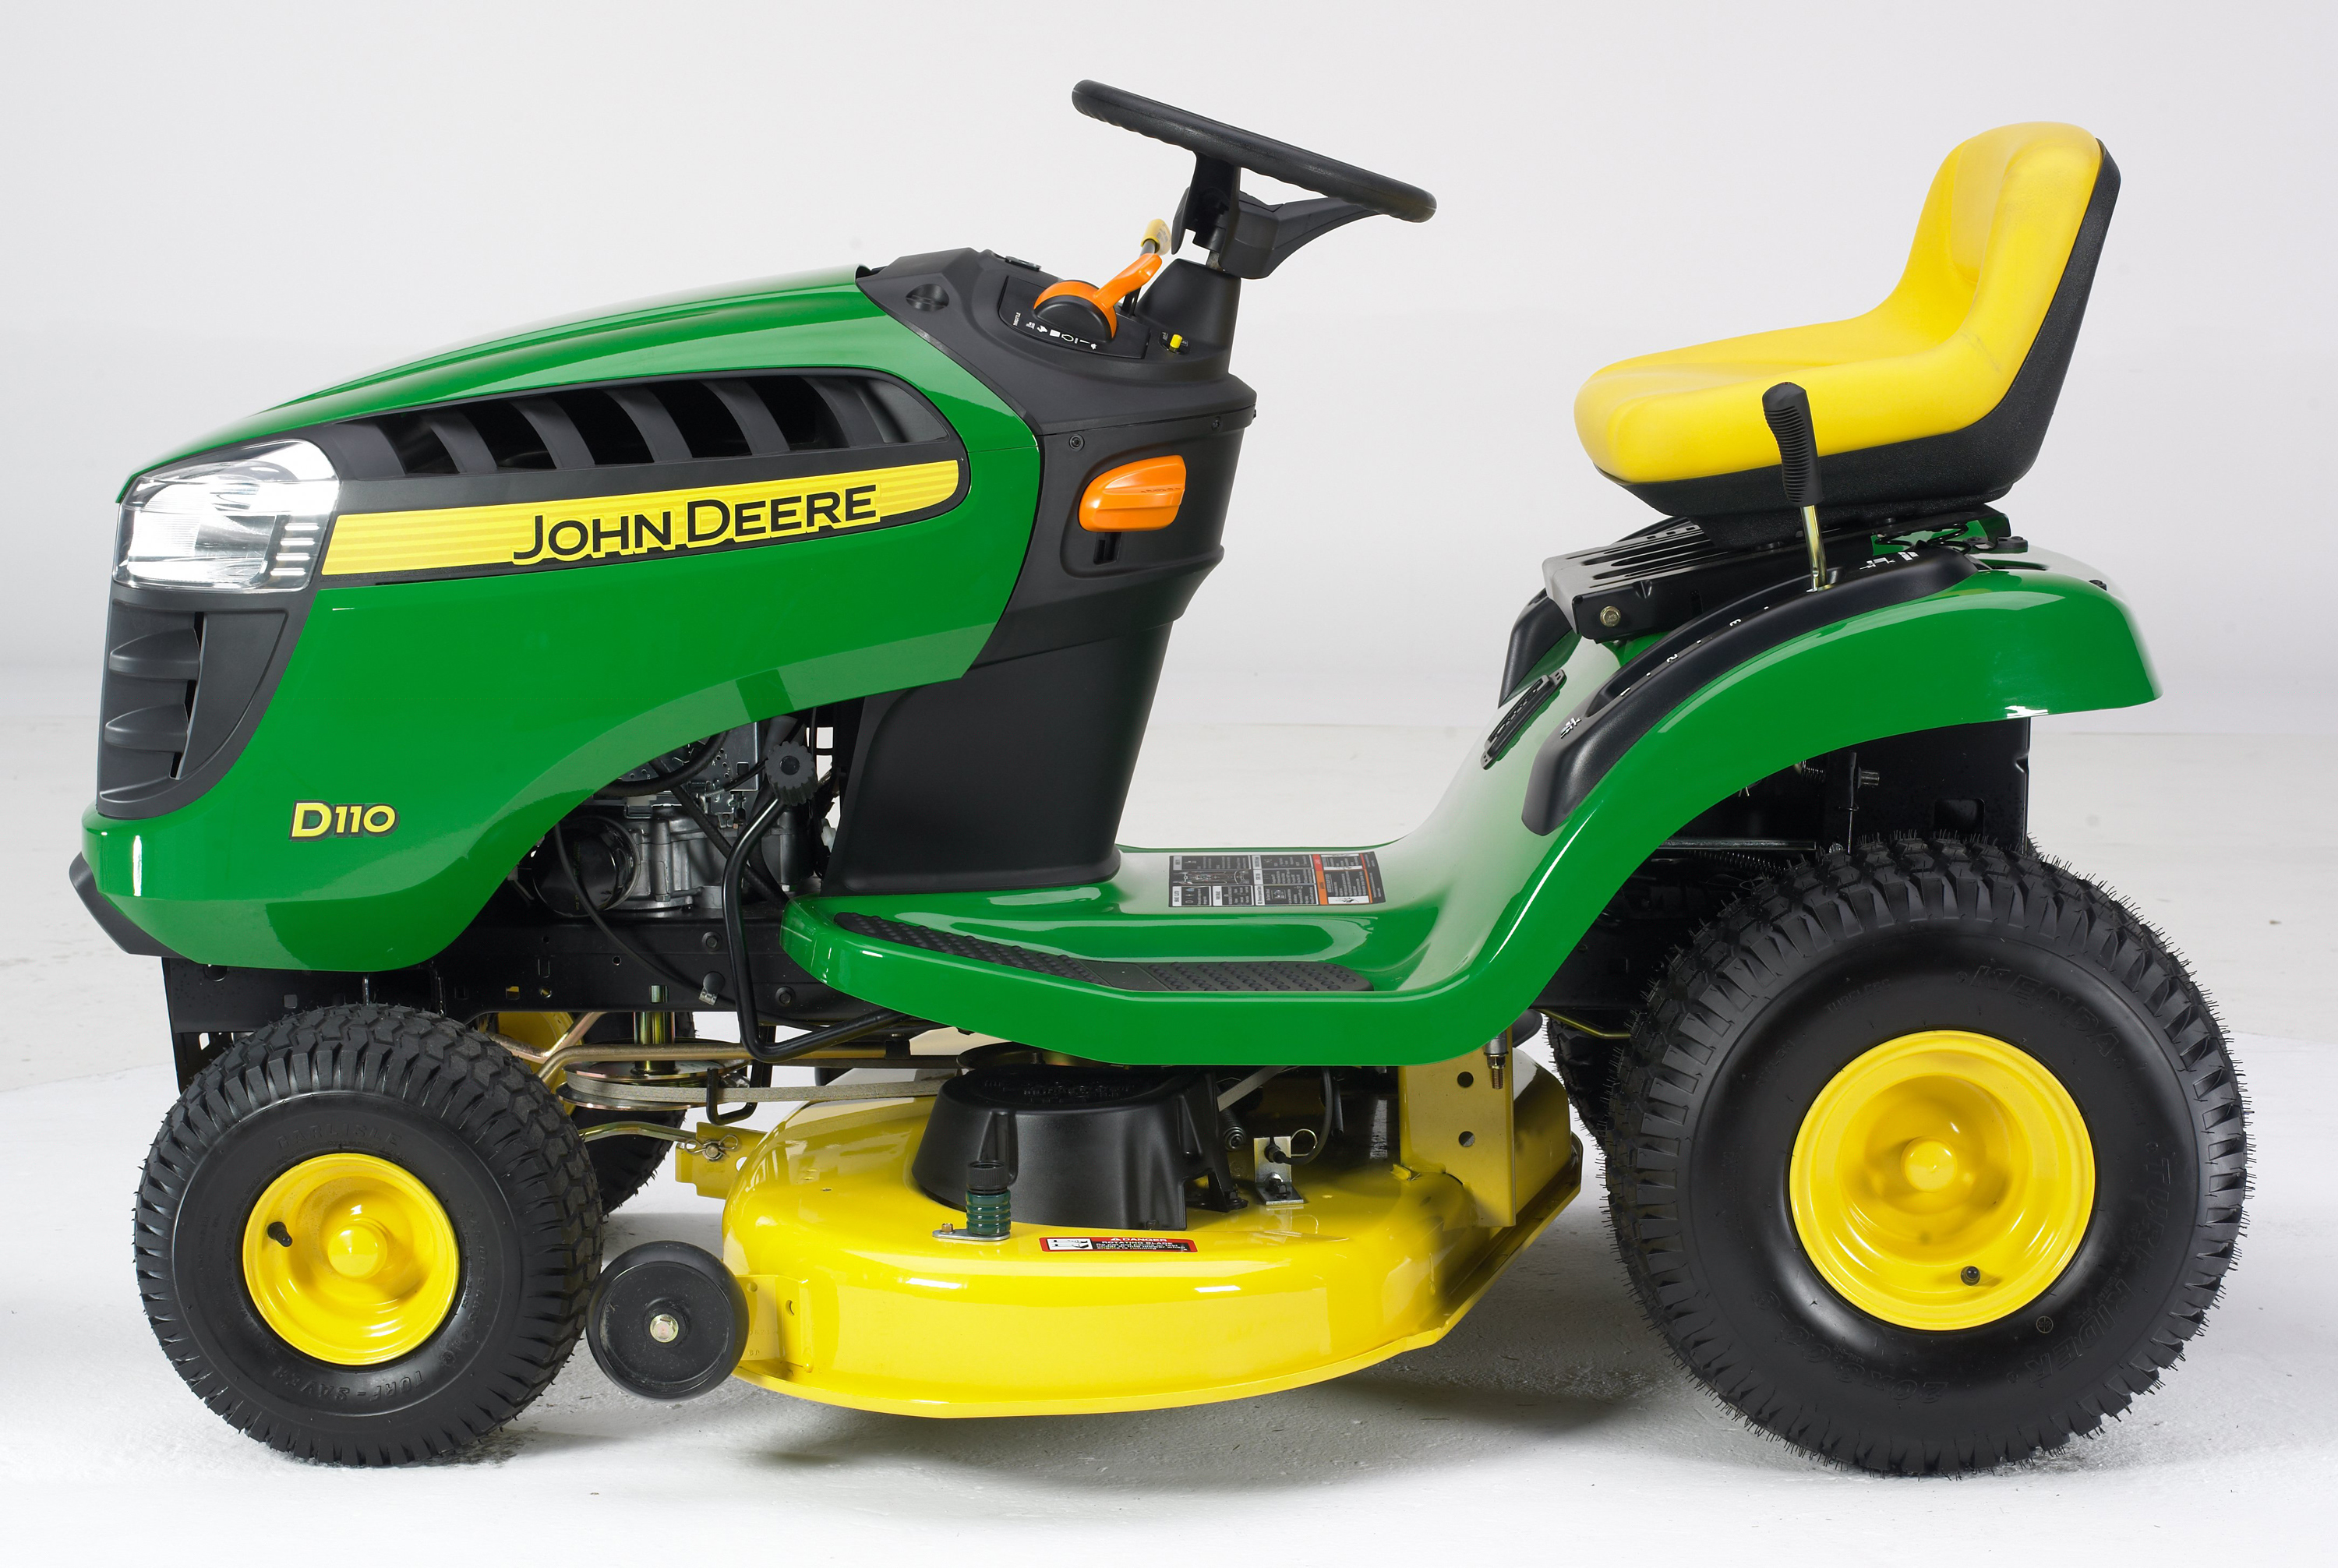 John Deere Unveils the New 100 Series Lawn Tractor